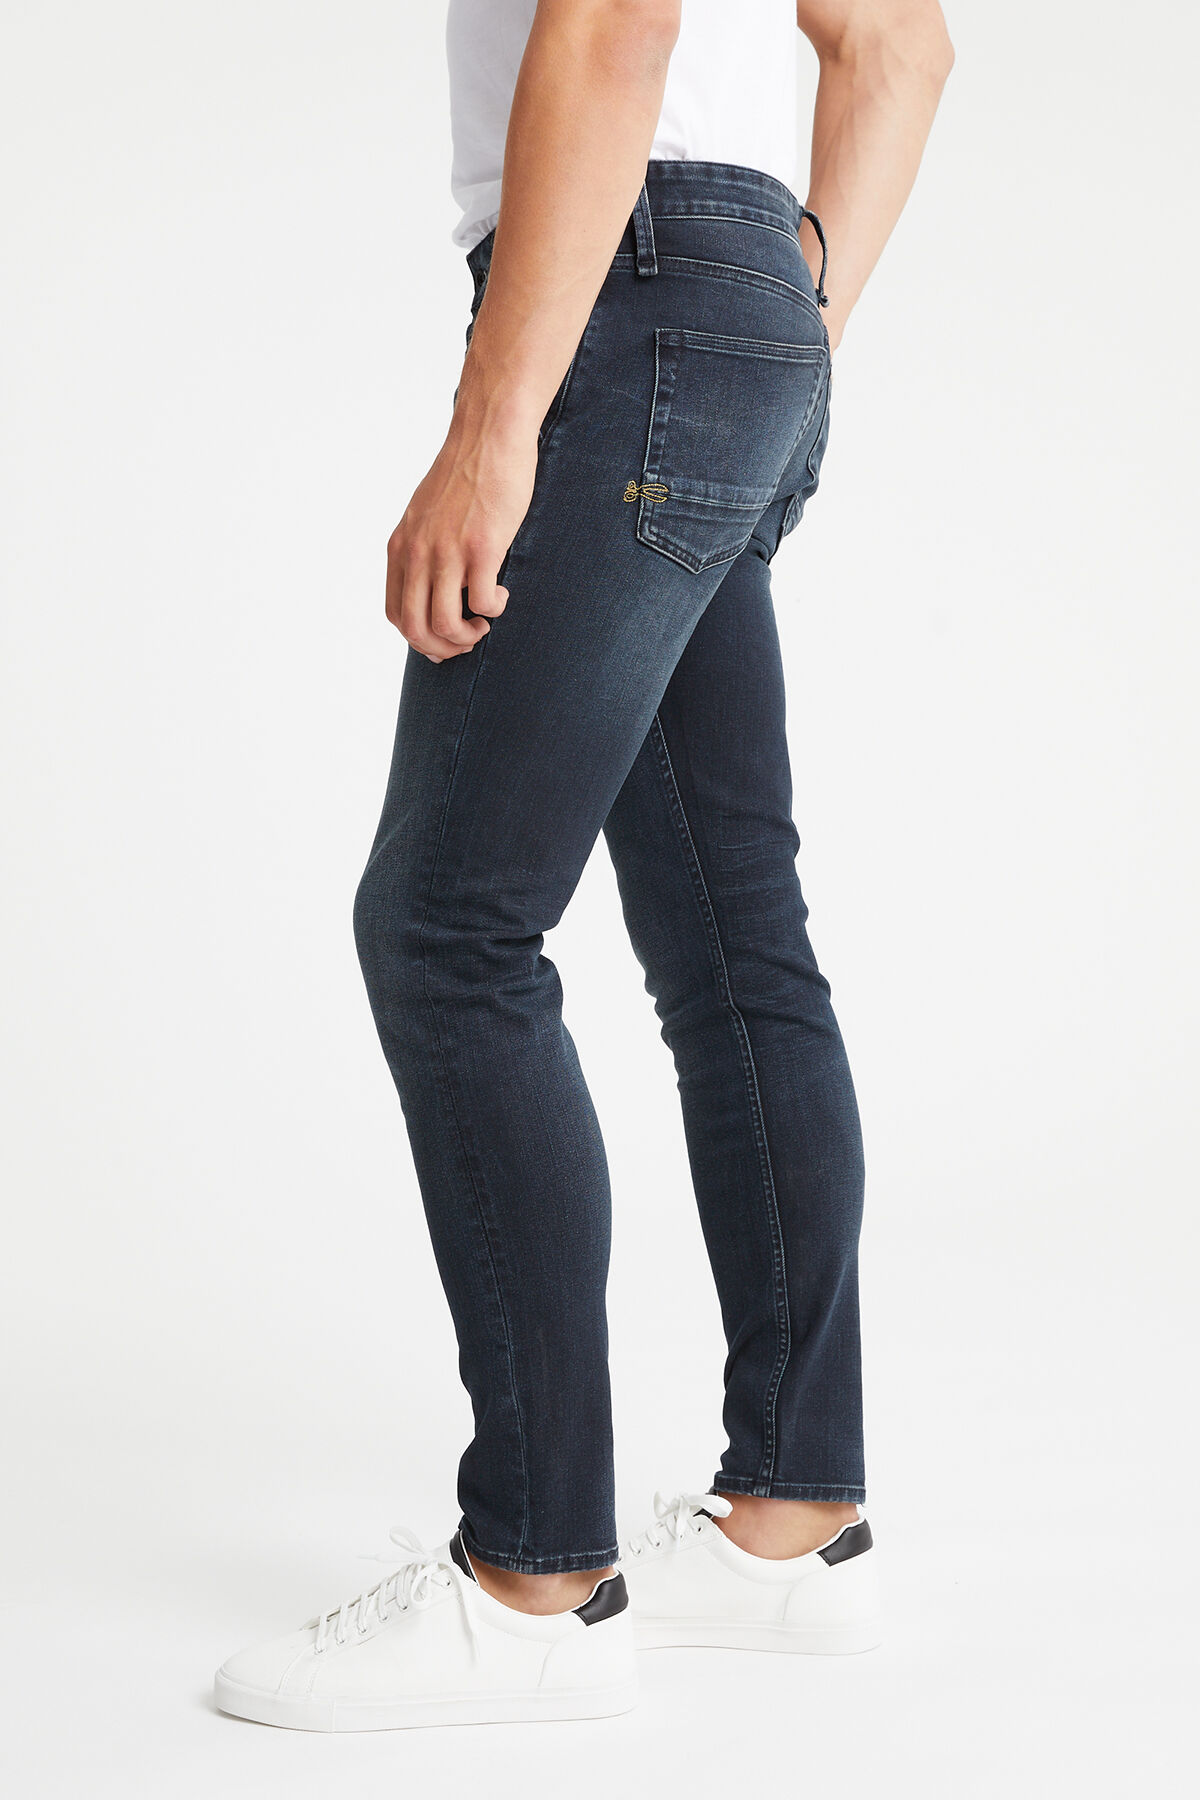 YORK Soft brushed, Blue-black Denim - Slim, tapered Fit